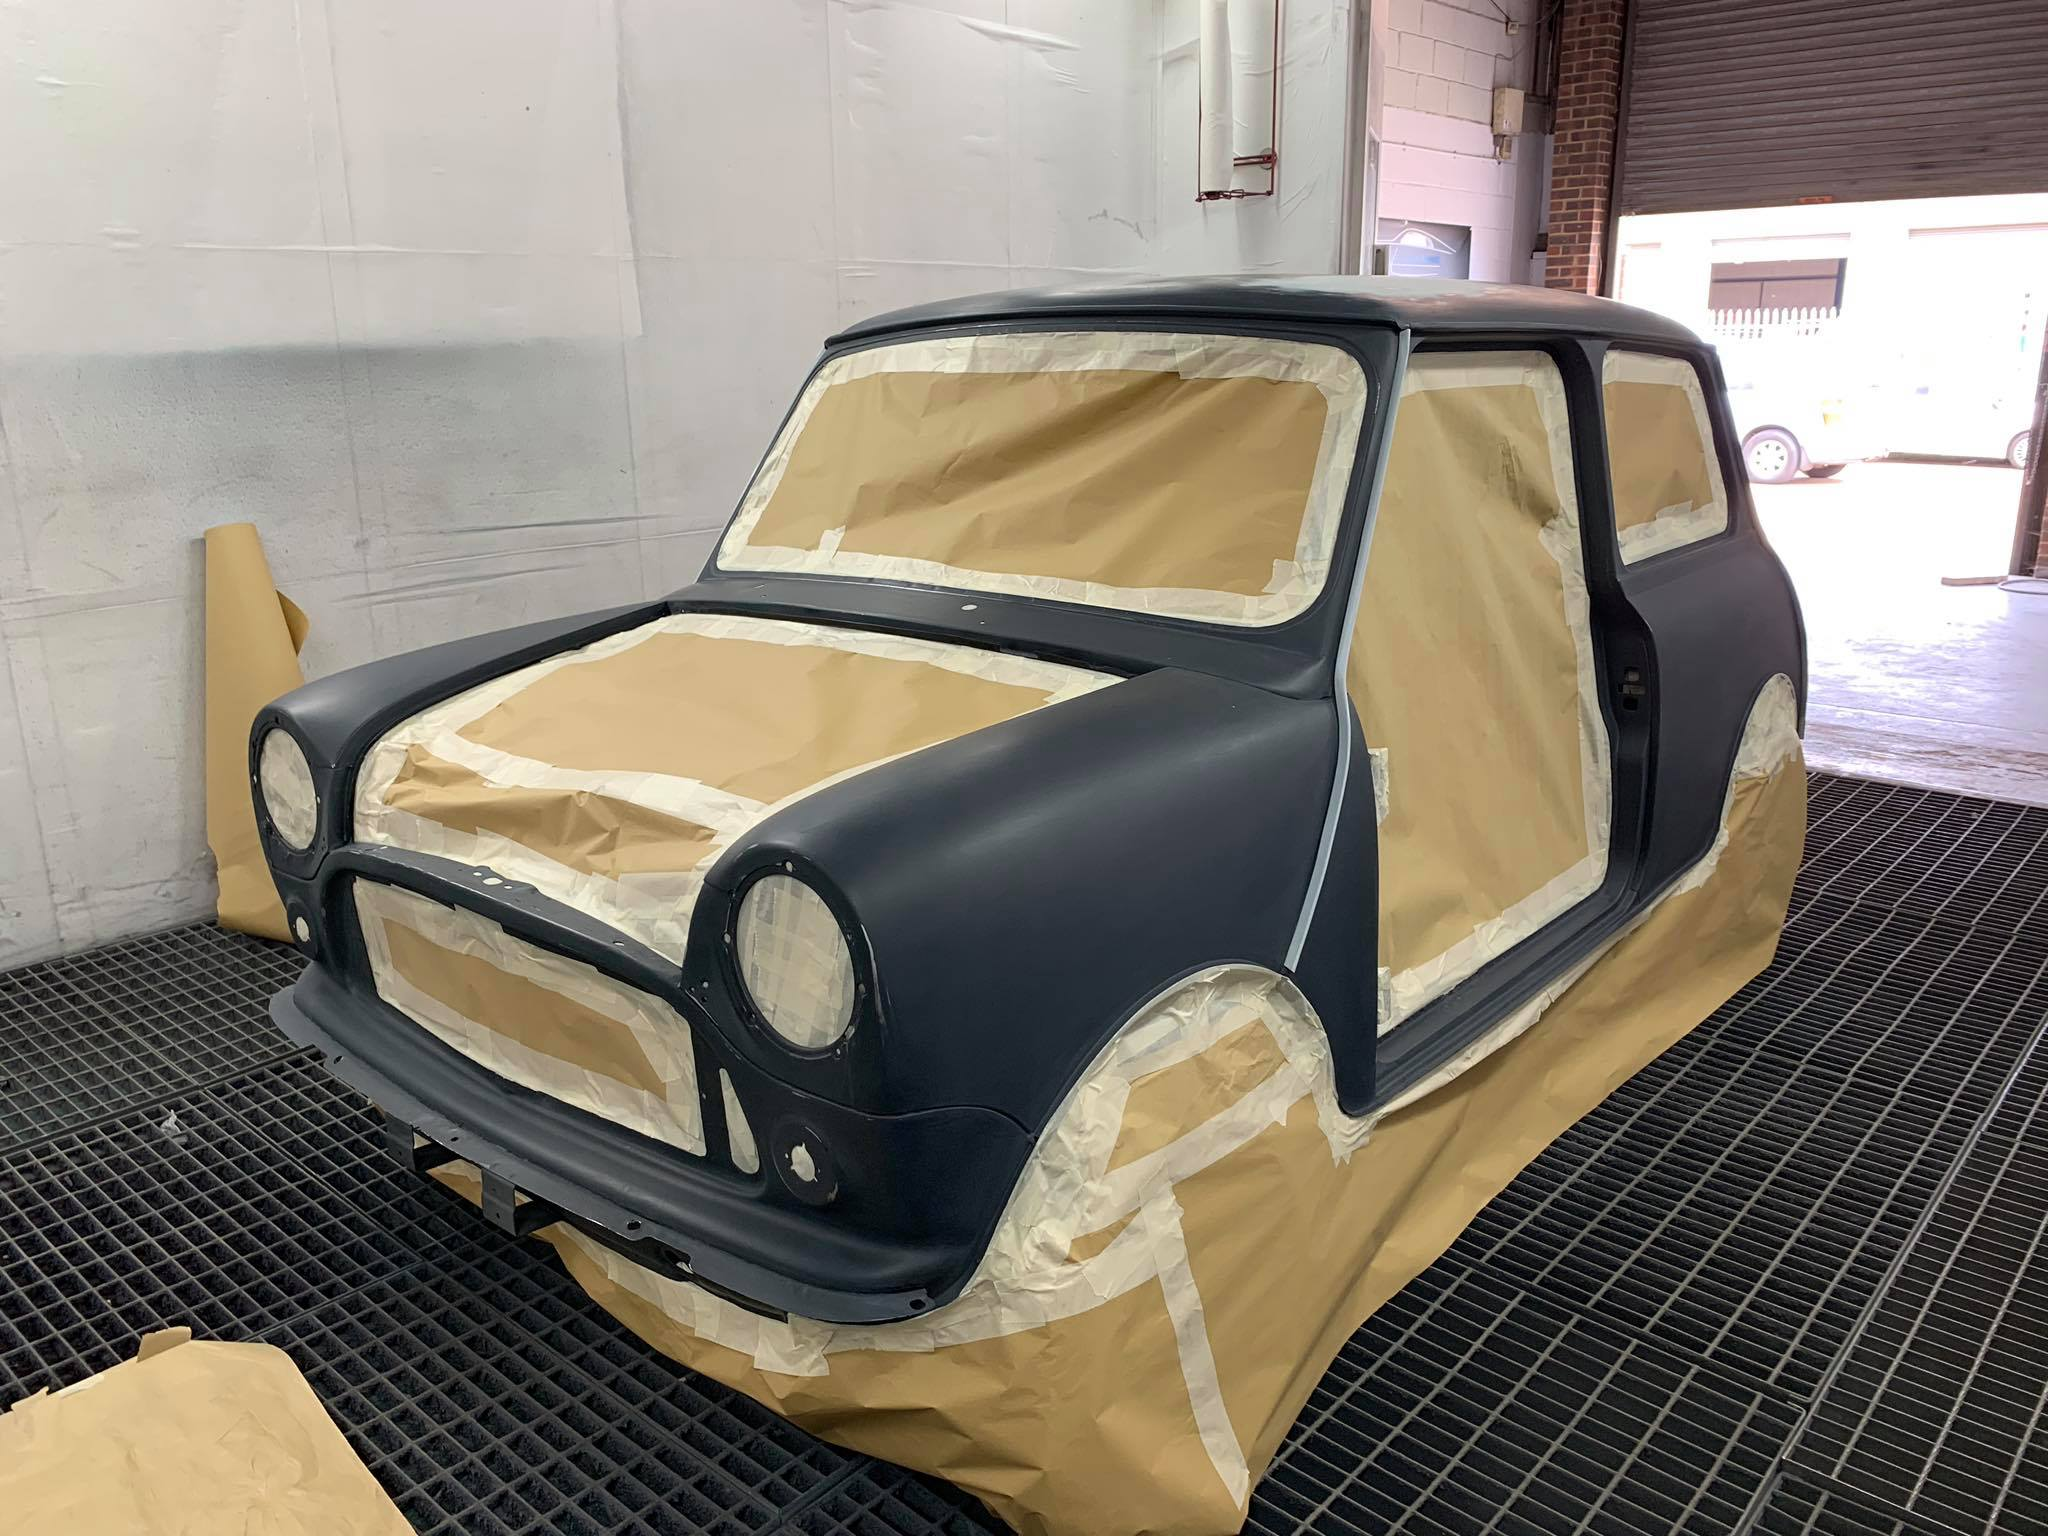 A mini being re-sprayed